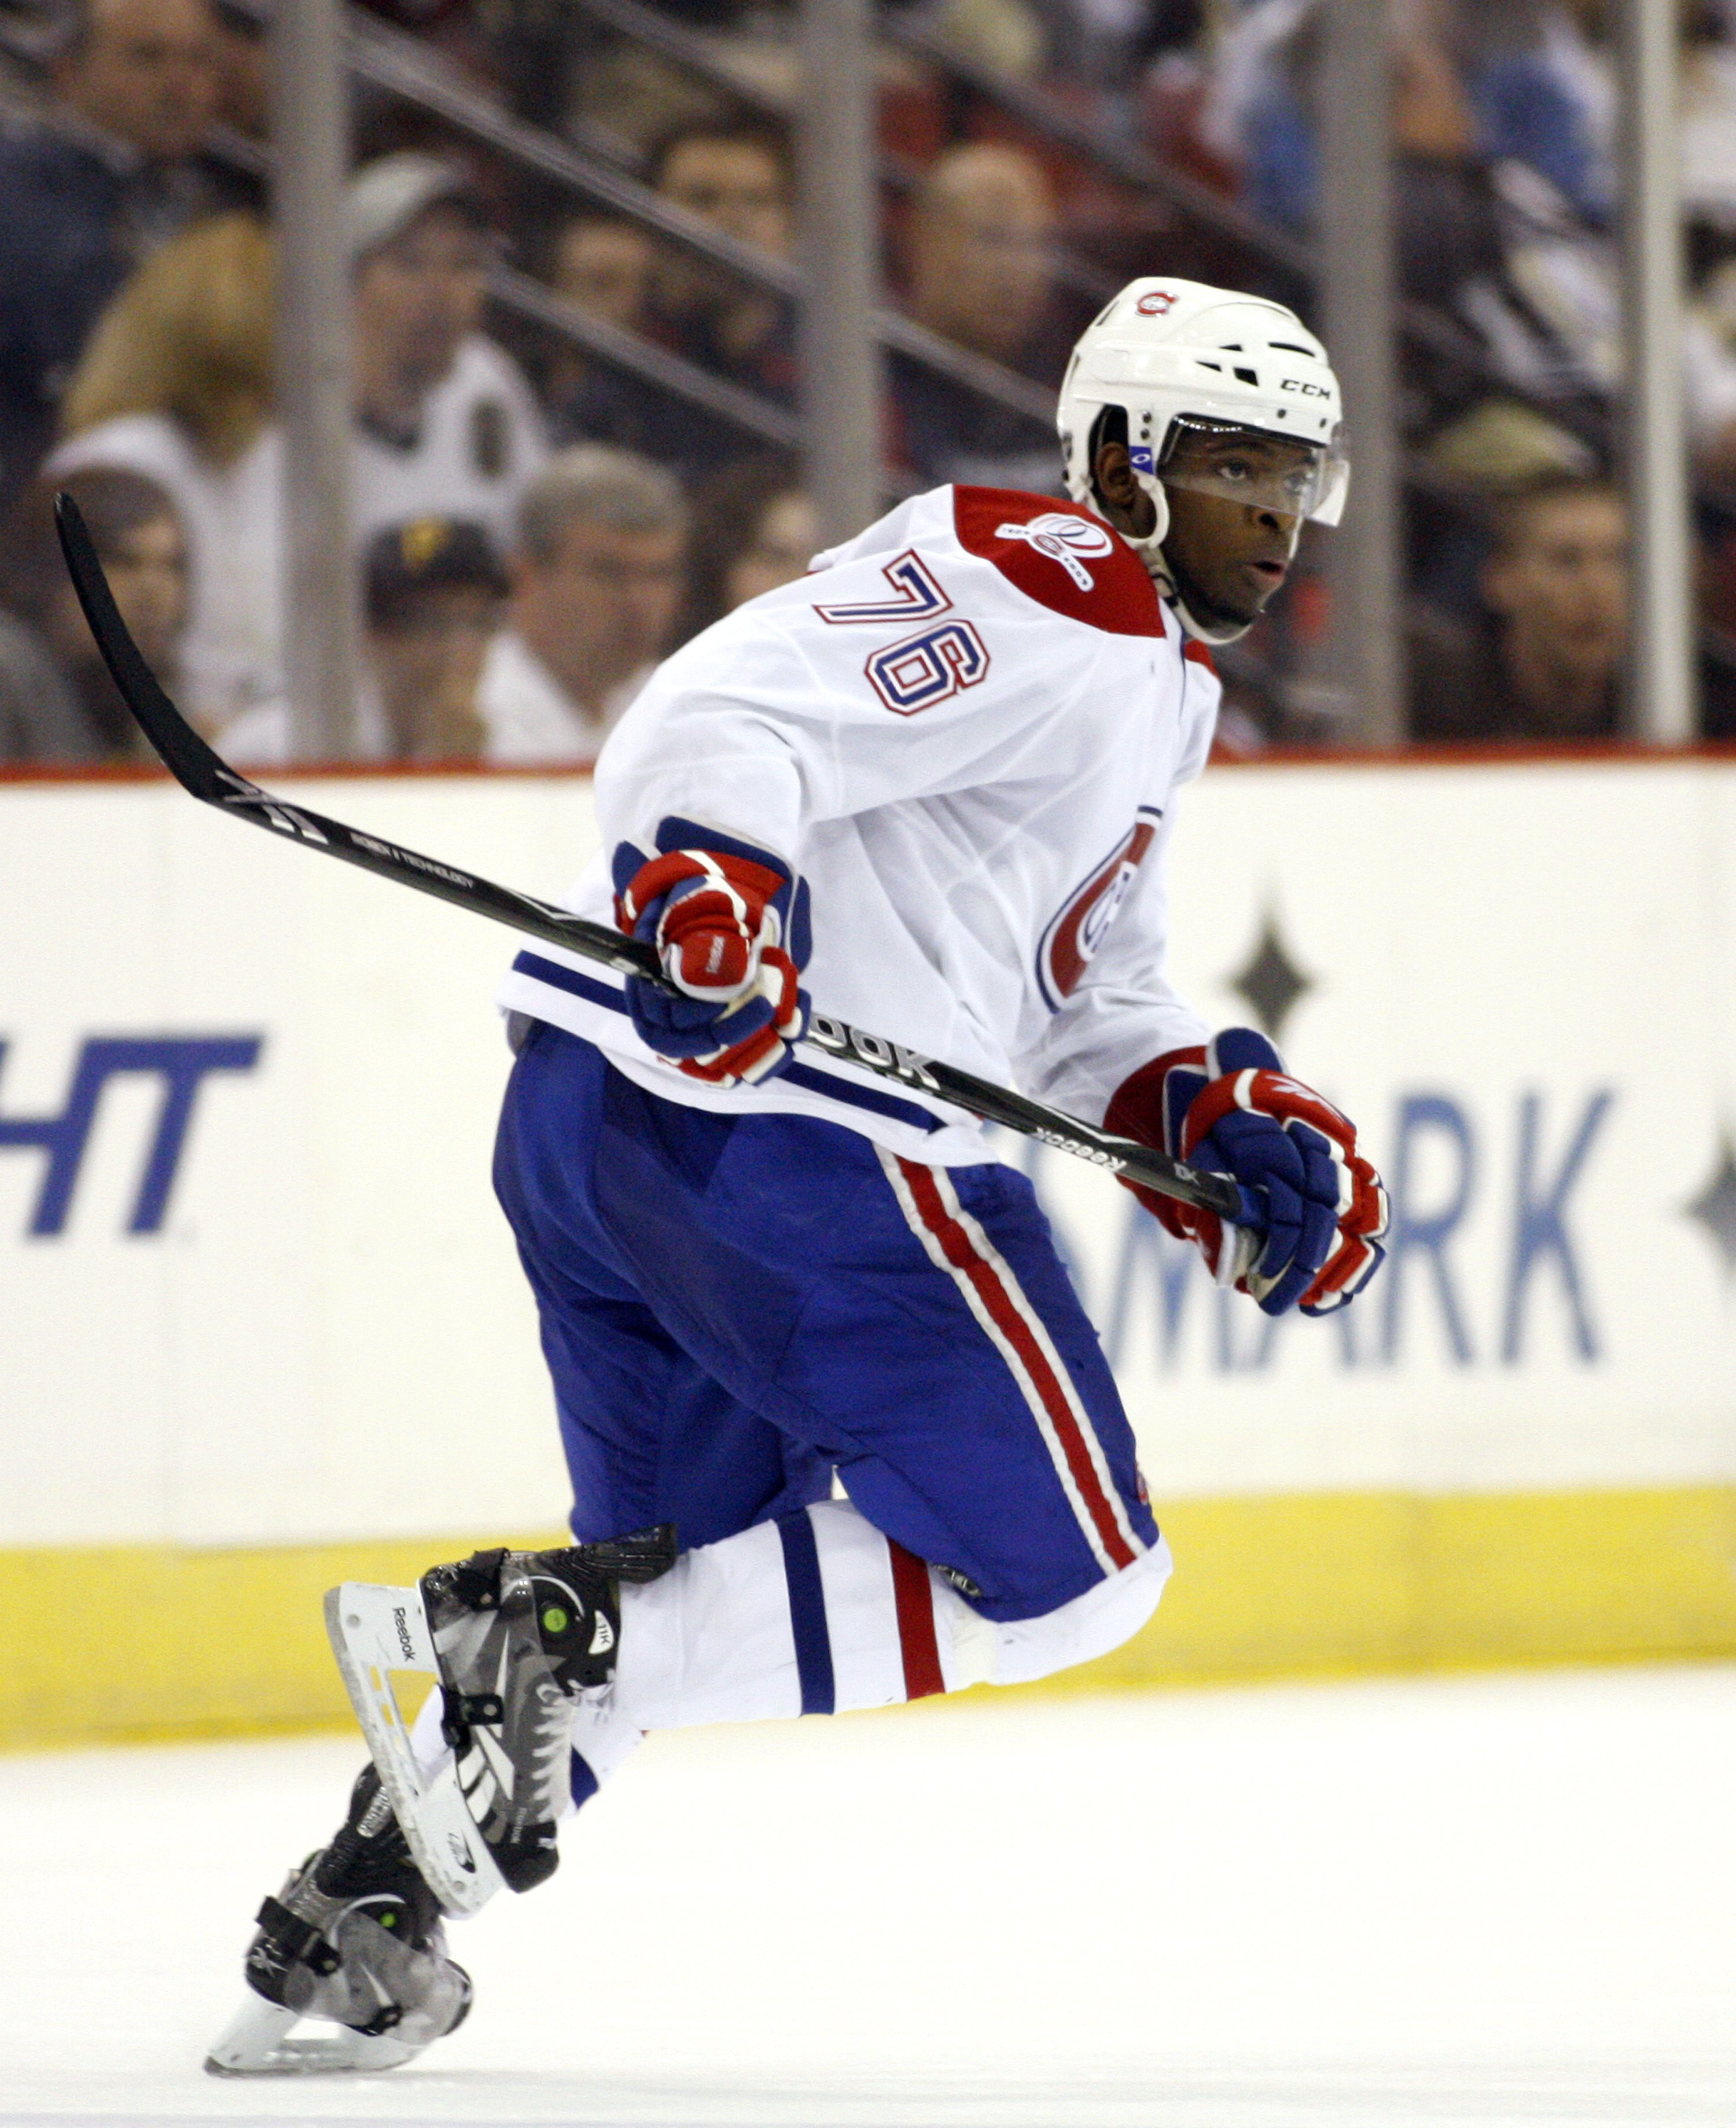 PITTSBURGH - MAY 8  PK Subban  76 of the Montreal Canadiens skates against  the a836dac50